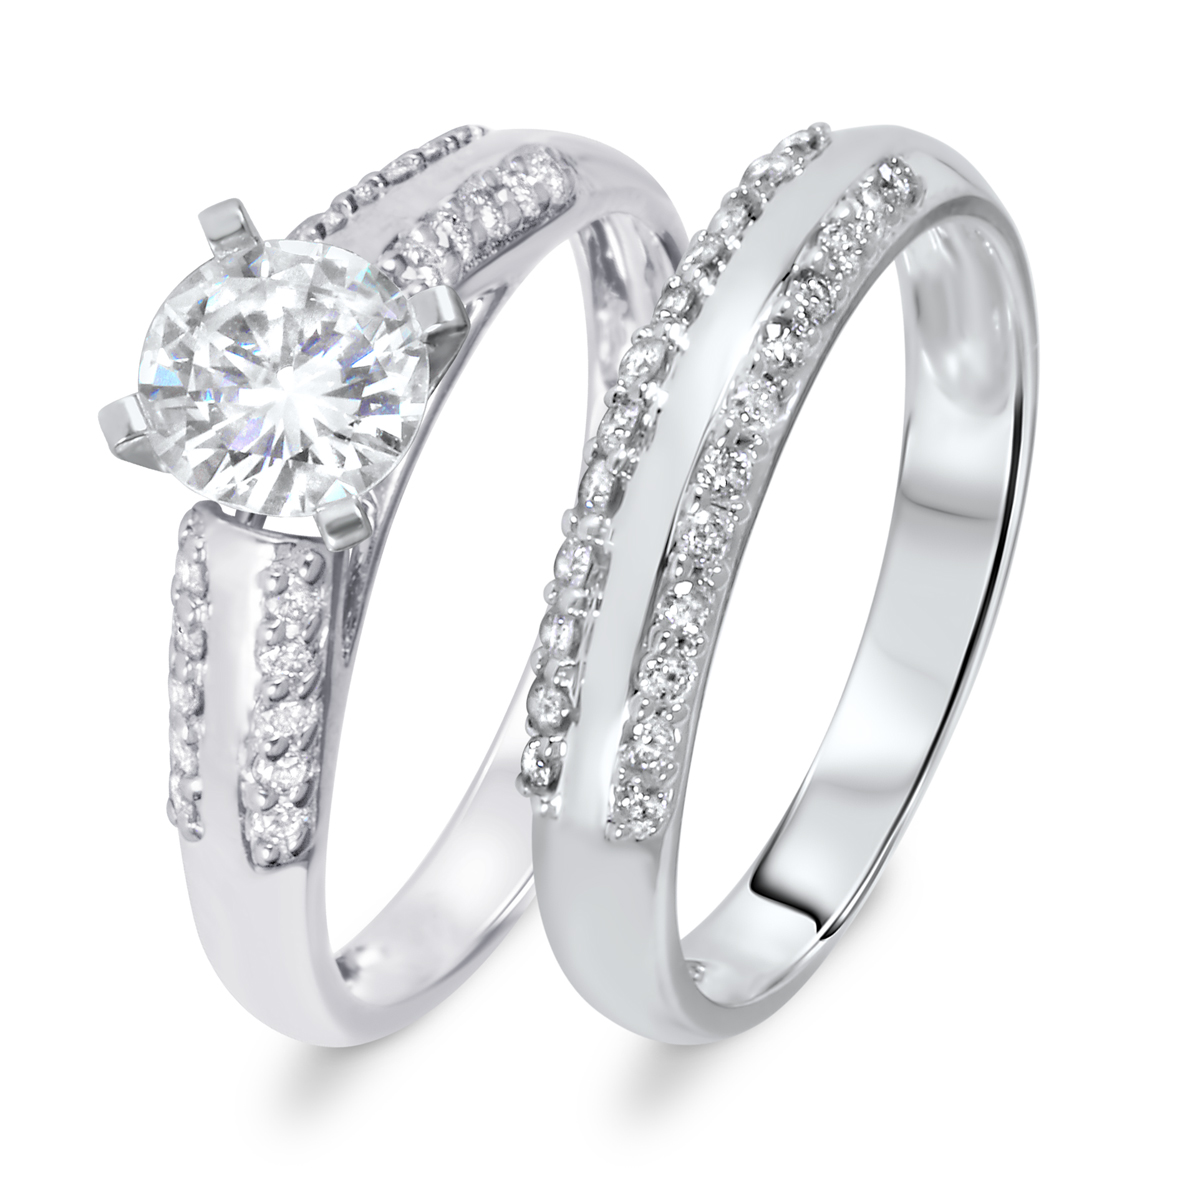 1 1/5 CT. T.W. Diamond Women's Bridal Wedding Ring Set 14K White Gold